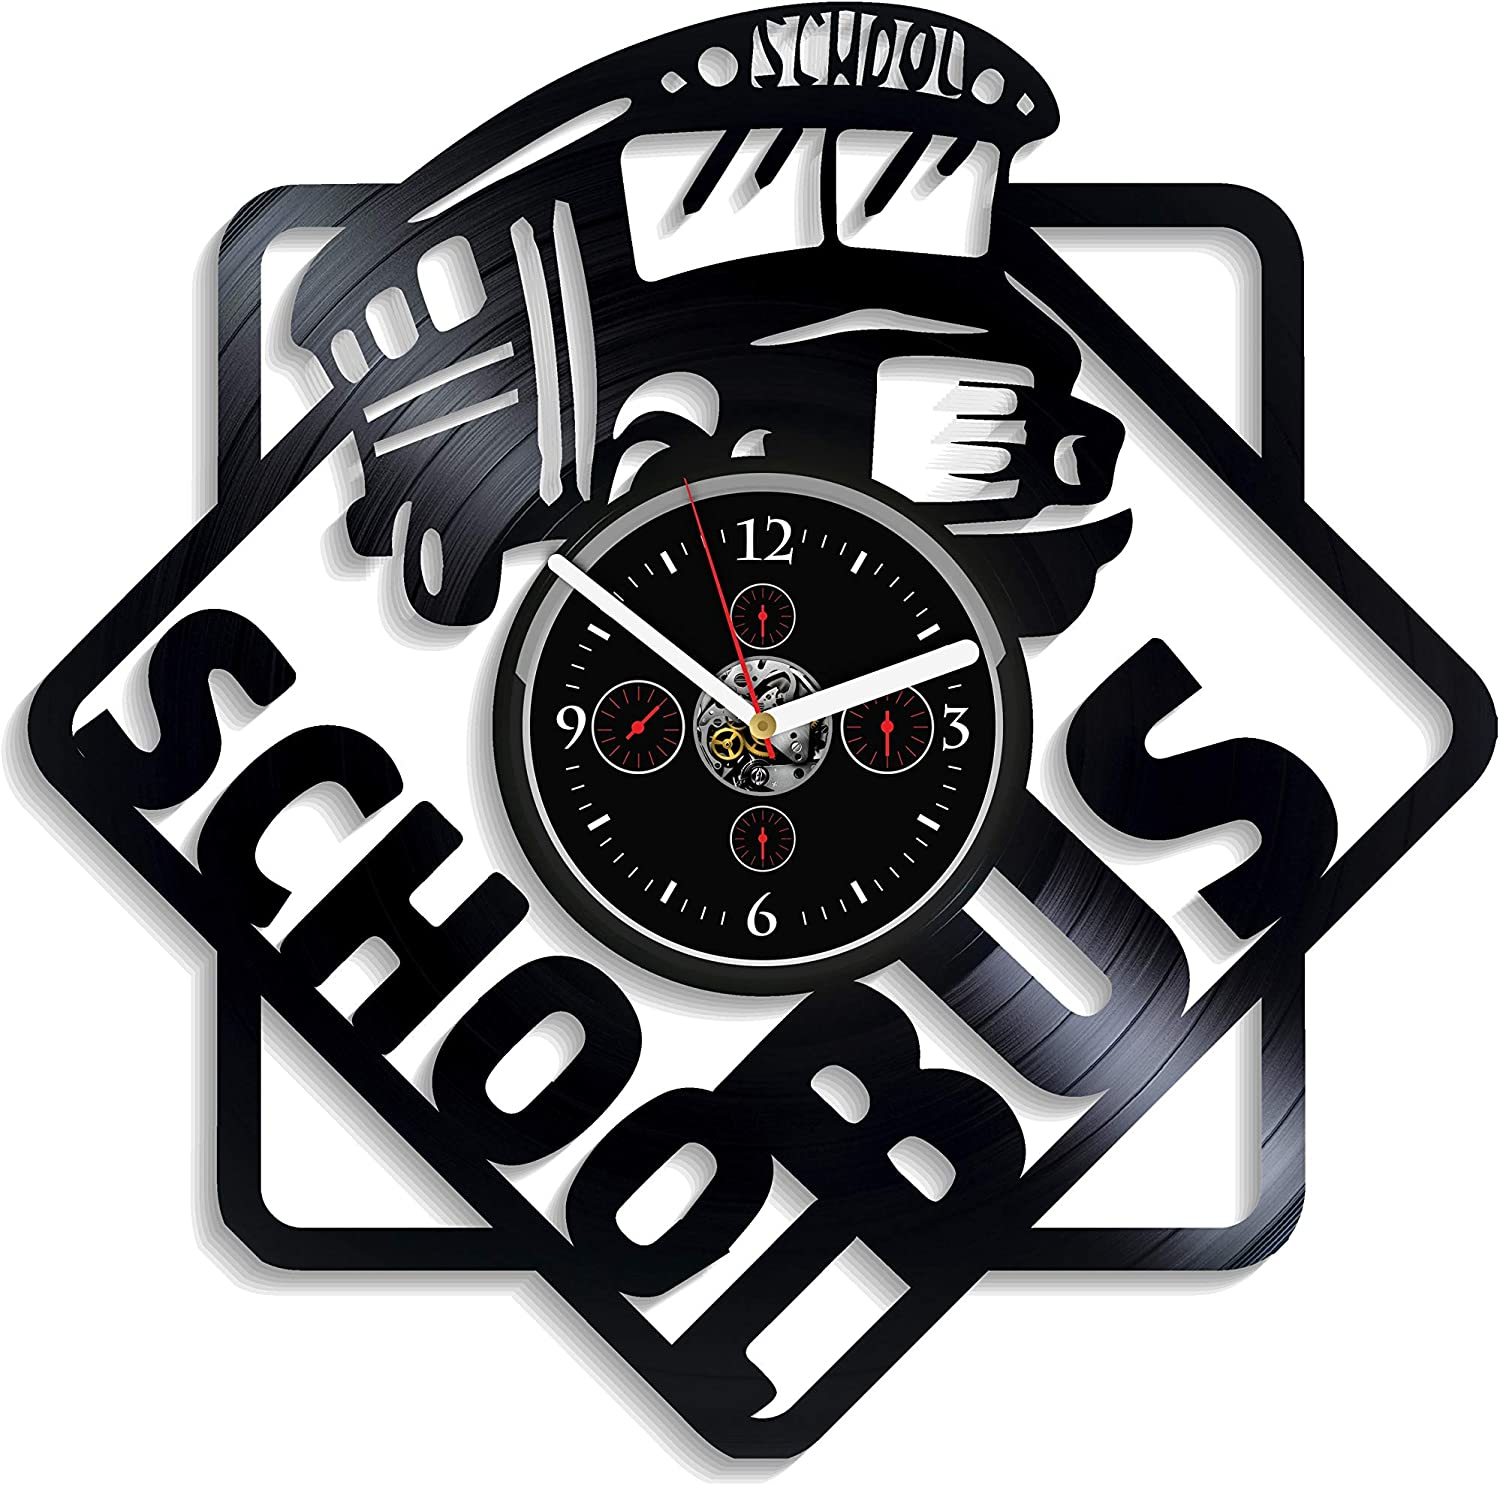 School Bus Wall Clock Vintage Vinyl Record Retro Wall Clock School Bus Art Exclusive Wall Clock 12 Inch Birthday Gift School Bus Gift New Year Gift School Bus Handmade Clock Xmas Gift